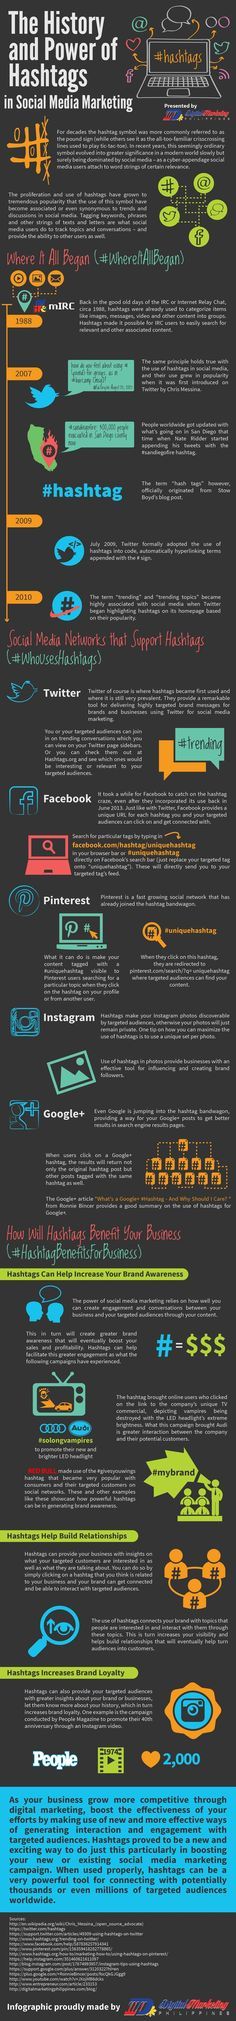 The History of Hashtags in Social Media Marketing and how they benefit your business [INFOGRAPHIC]